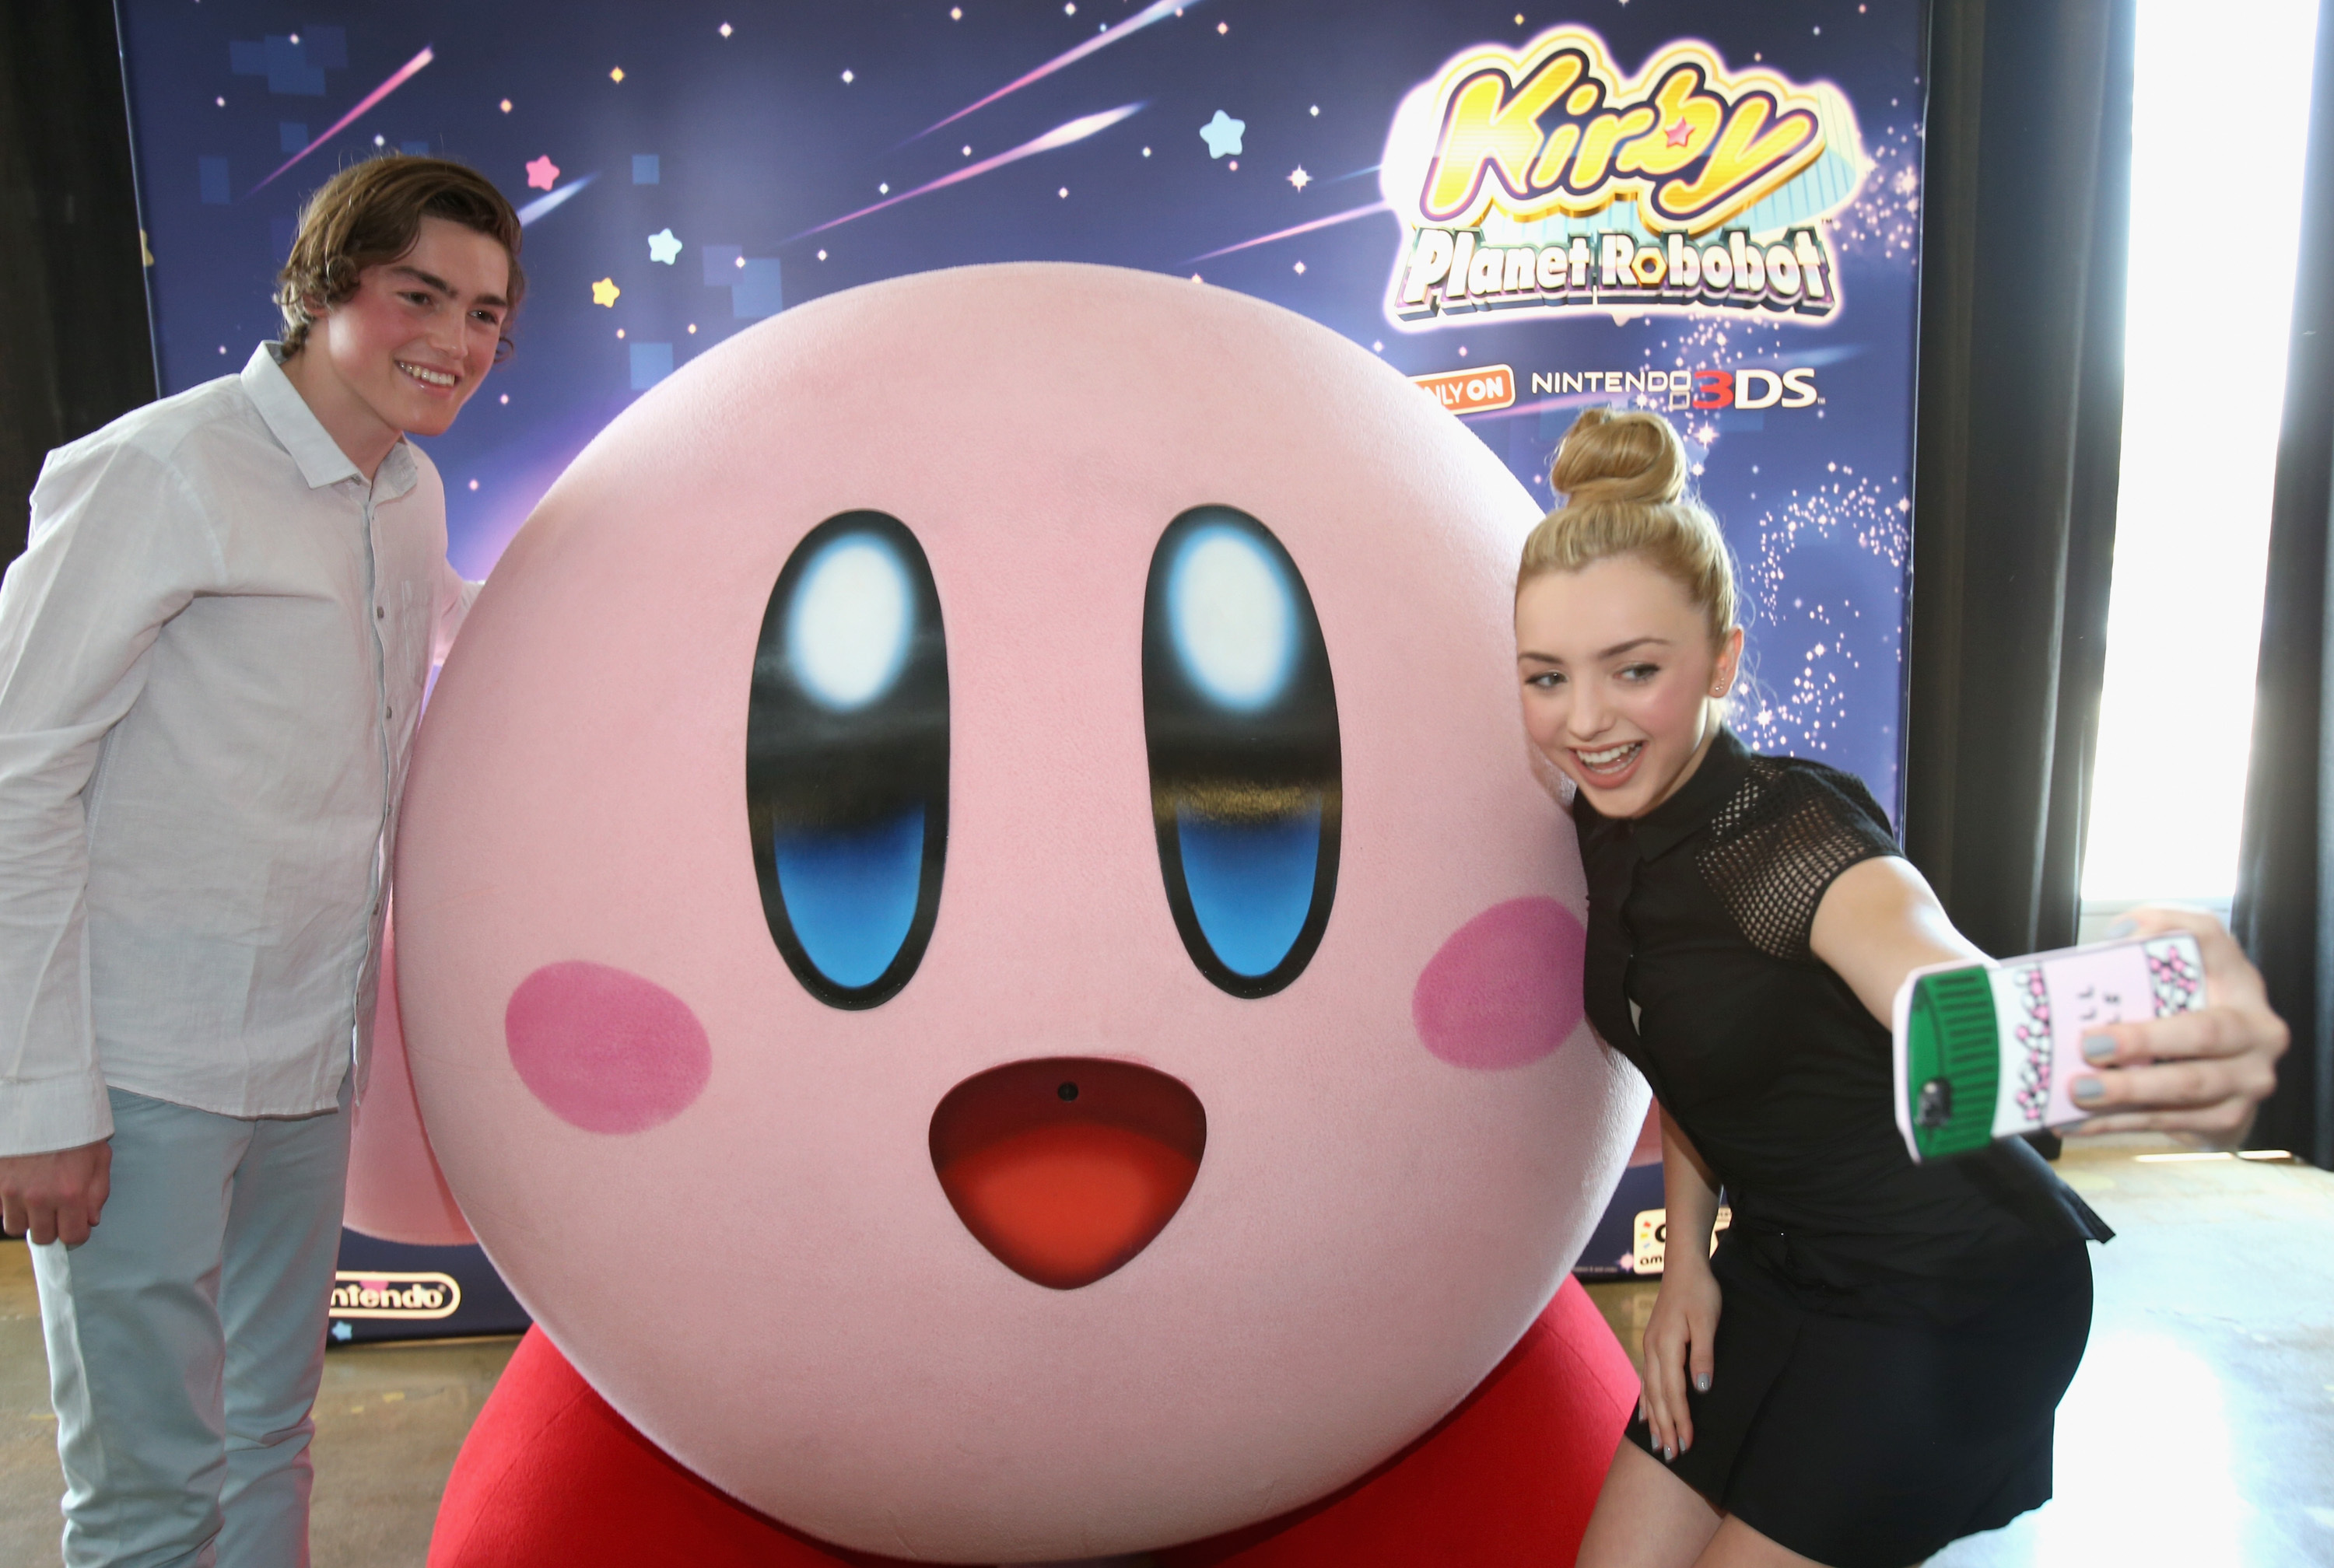 """In this photo provided by Nintendo of America, Peyton List from Disney's """"Bunk'd' who is starring in the upcoming feature """"The Thinning"""" and Spencer List from """"The Bachelors"""" interact with Kirby at the Kirby: Planet Robobot celebration at Smashbox Studios in Culver City, California, on June 22, 2016. Kirby: Planet Robobot, the latest instalment in the popular franchise, available now for the Nintendo 3DS family of systems."""